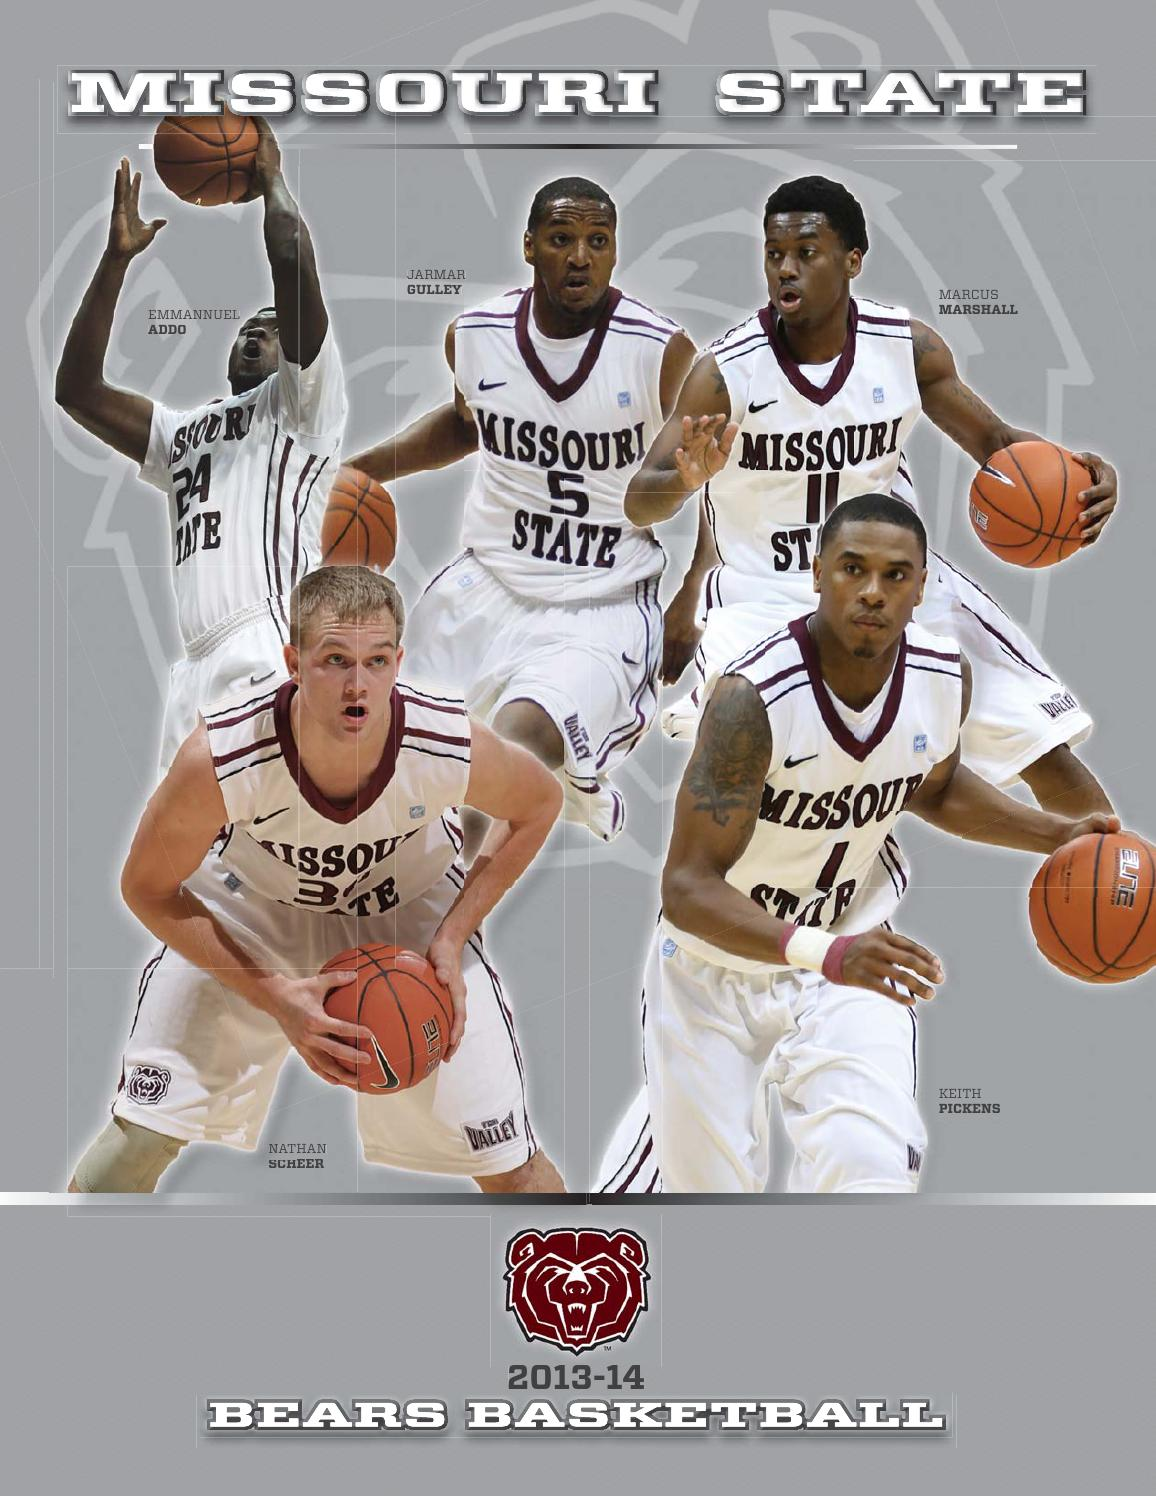 finest selection 399bf 4c5e3 2013-14 Missouri State Men s Basketball Guide by Missouri State Bears -  issuu